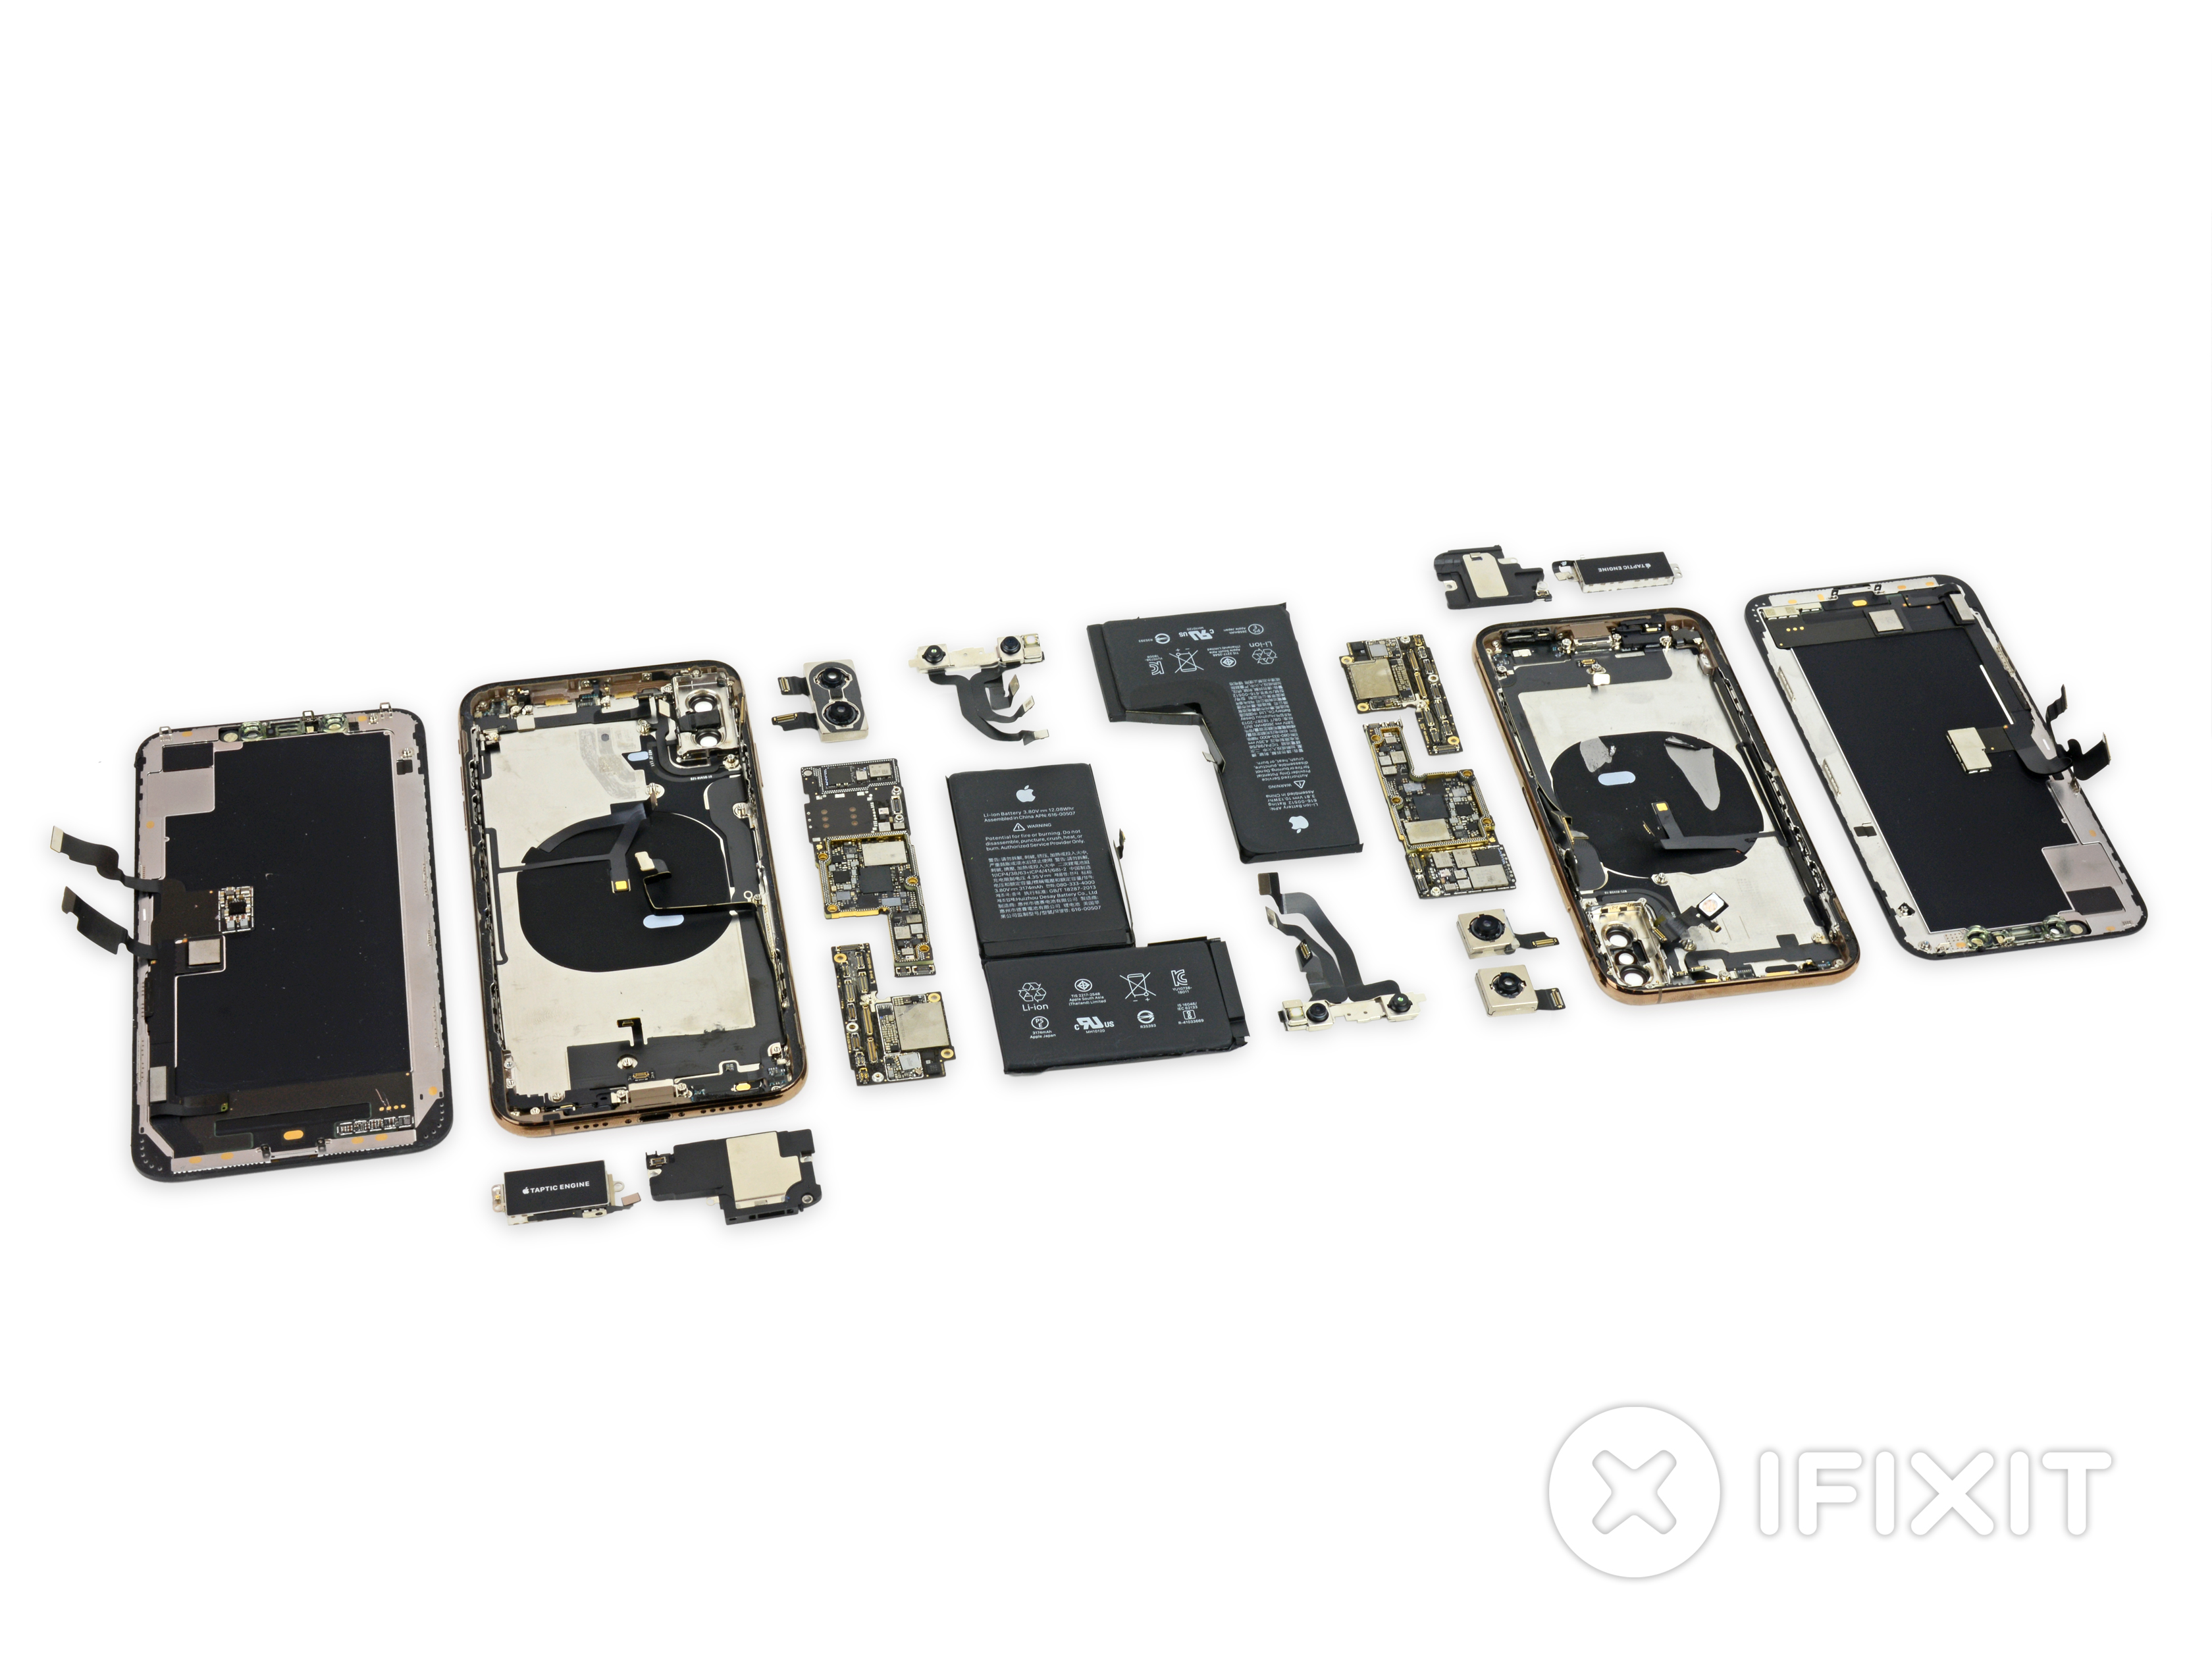 Iphone Xs And Max Teardown Ifixit Apart Fro The Mentioned Solutions You Can Always Design A Circuit That